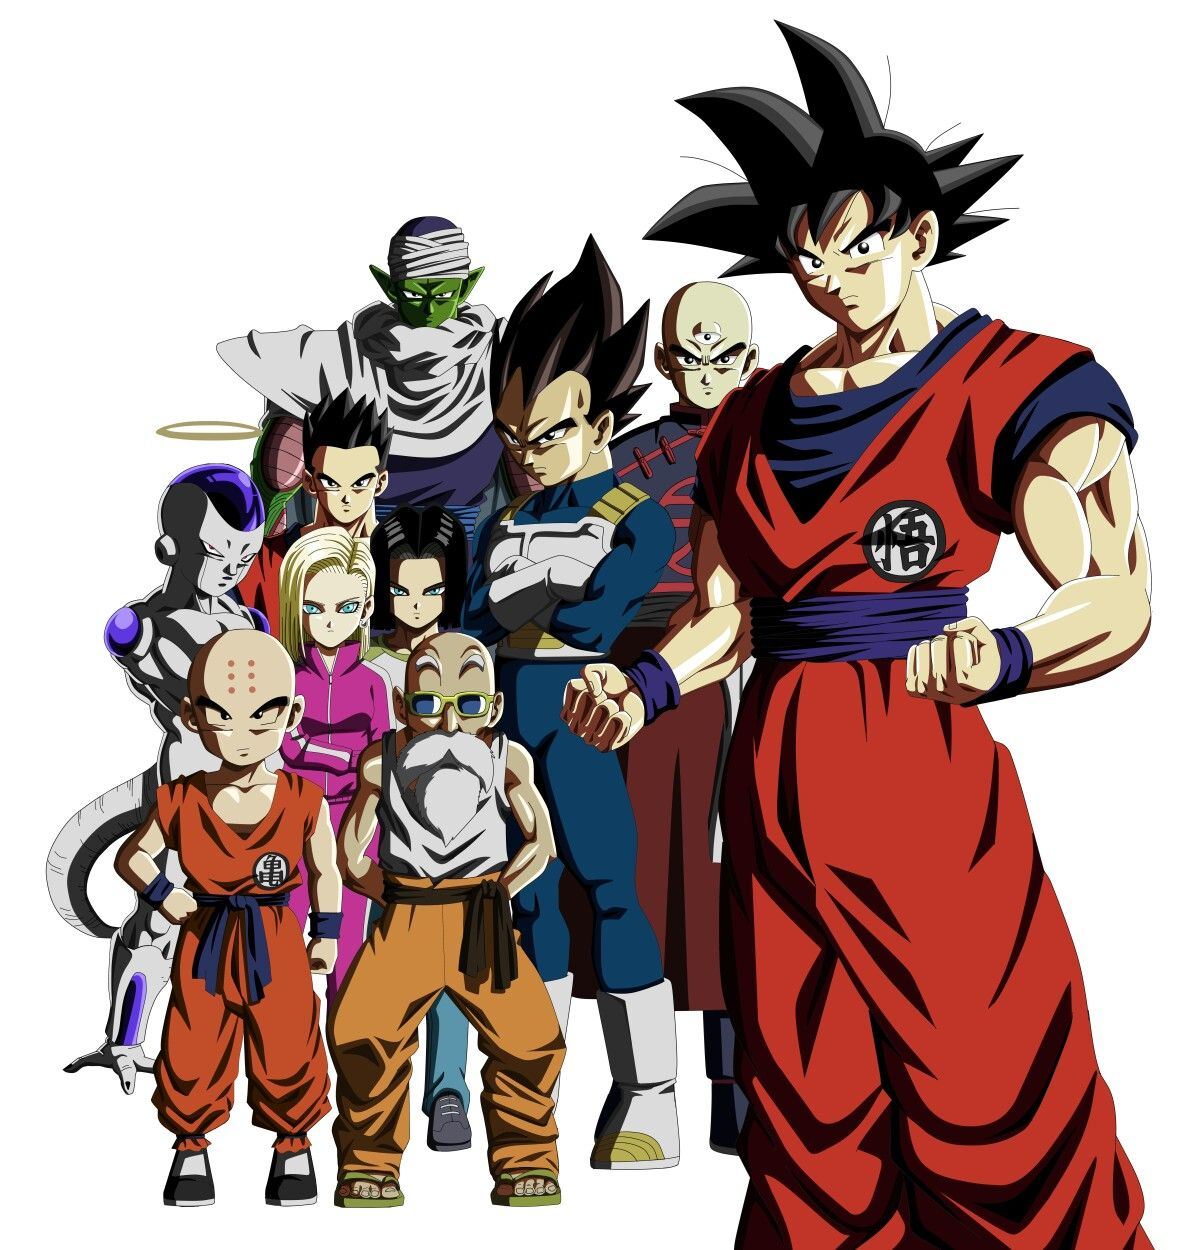 Team Universe 7 From 11th Ending Song Dragon Ball Super Dragon Ball Image Anime Dragon Ball